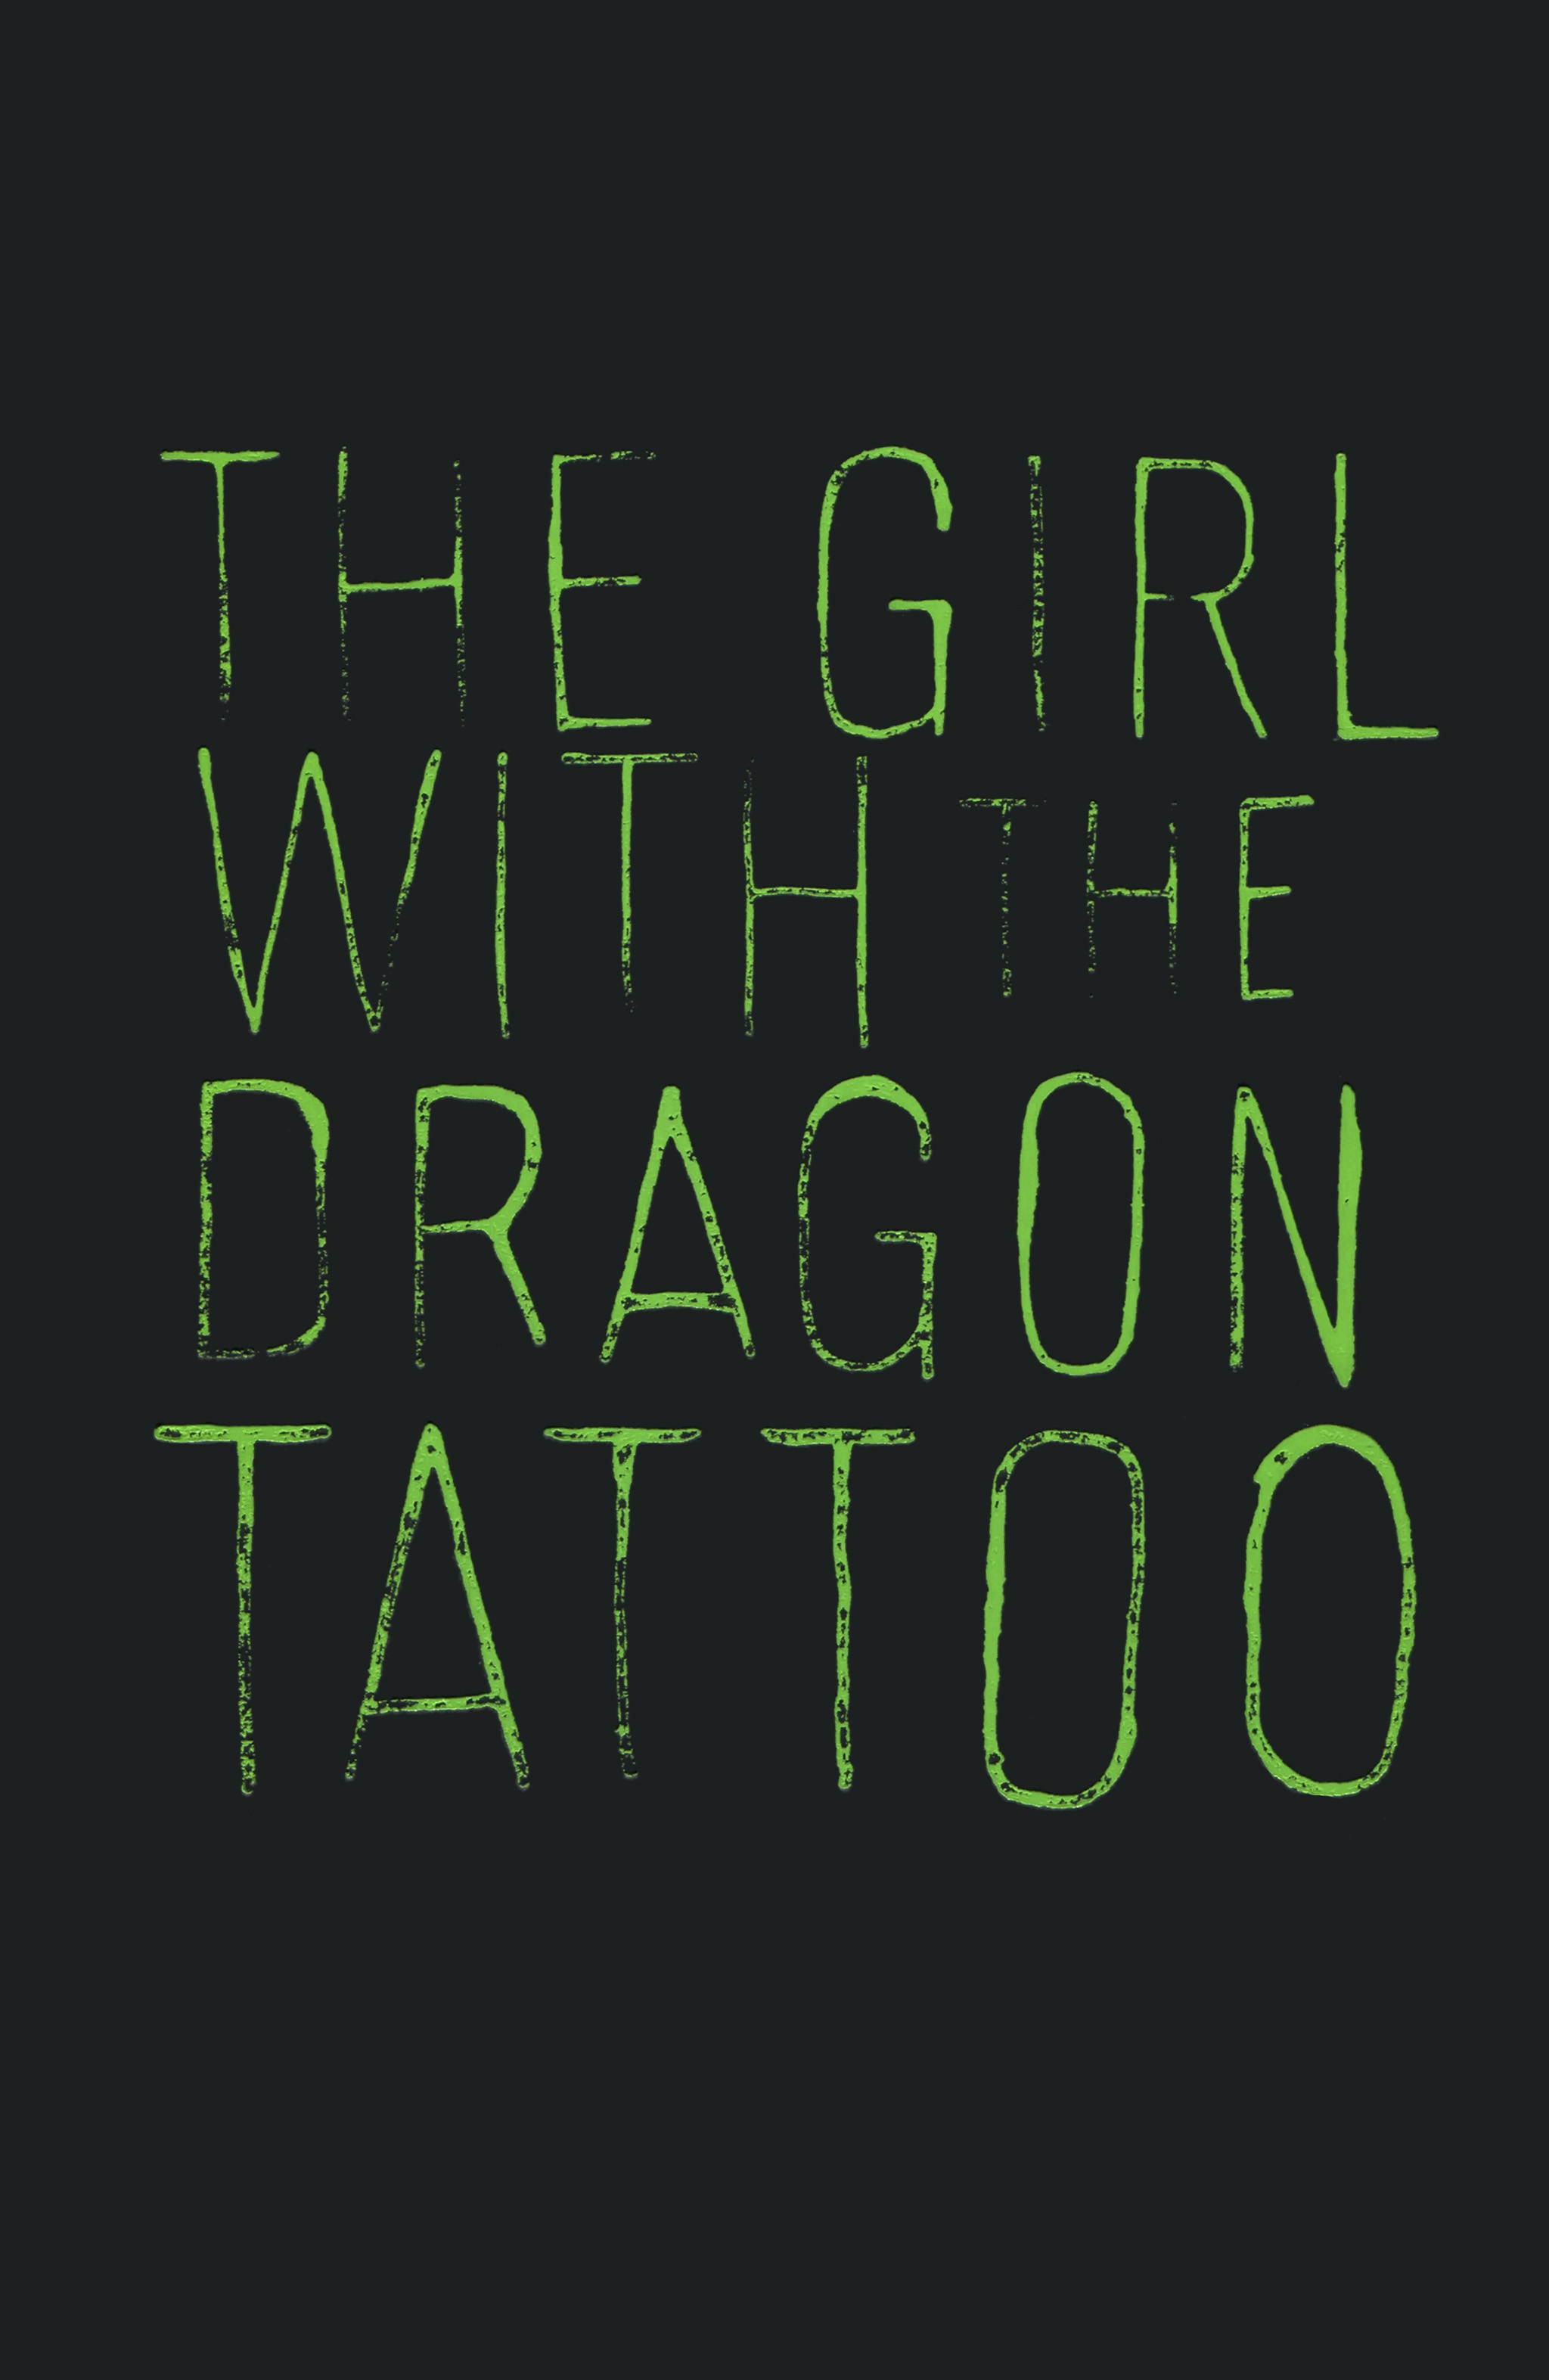 Read online The Girl With the Dragon Tattoo comic -  Issue # TPB 1 - 3